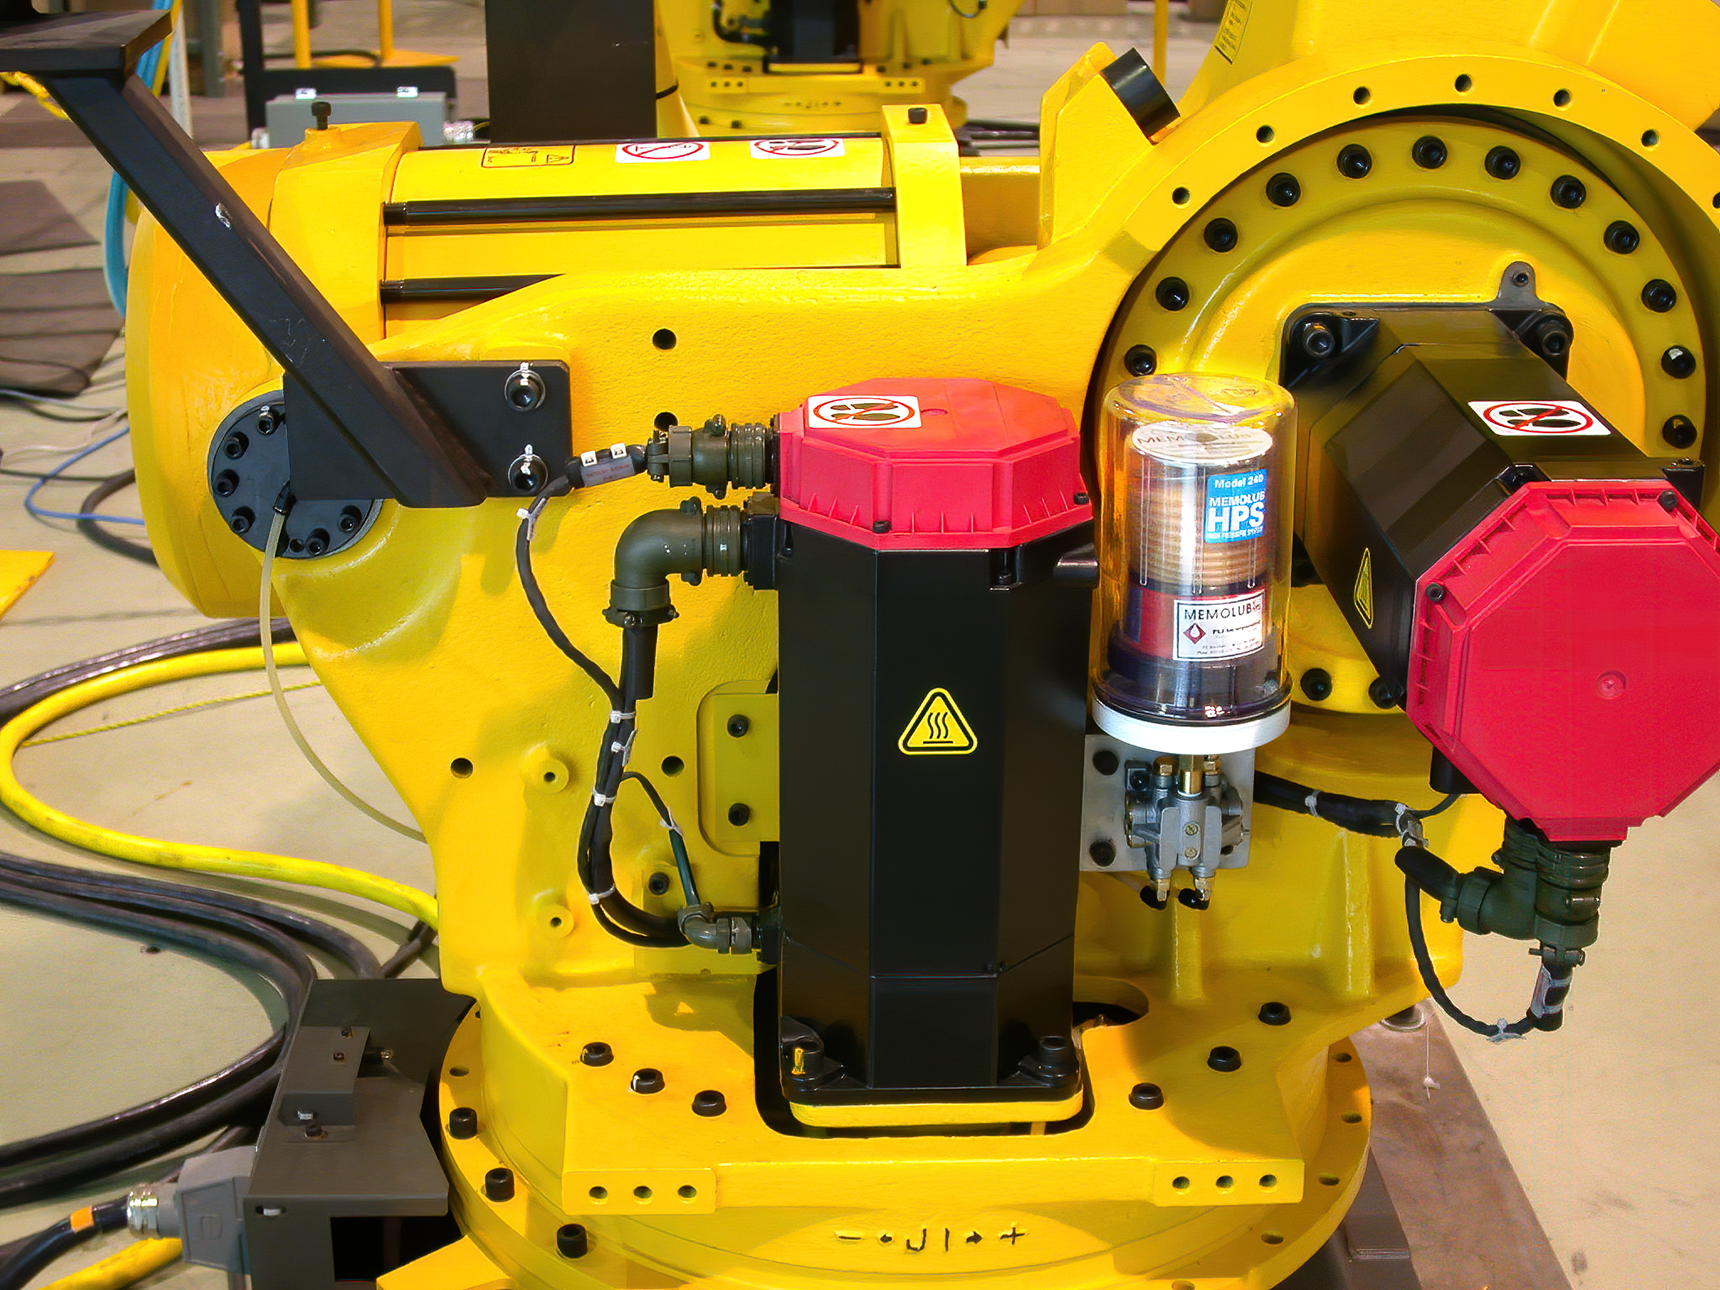 MEMOLUB MPS lubricating two bearings on a Fanuc robot